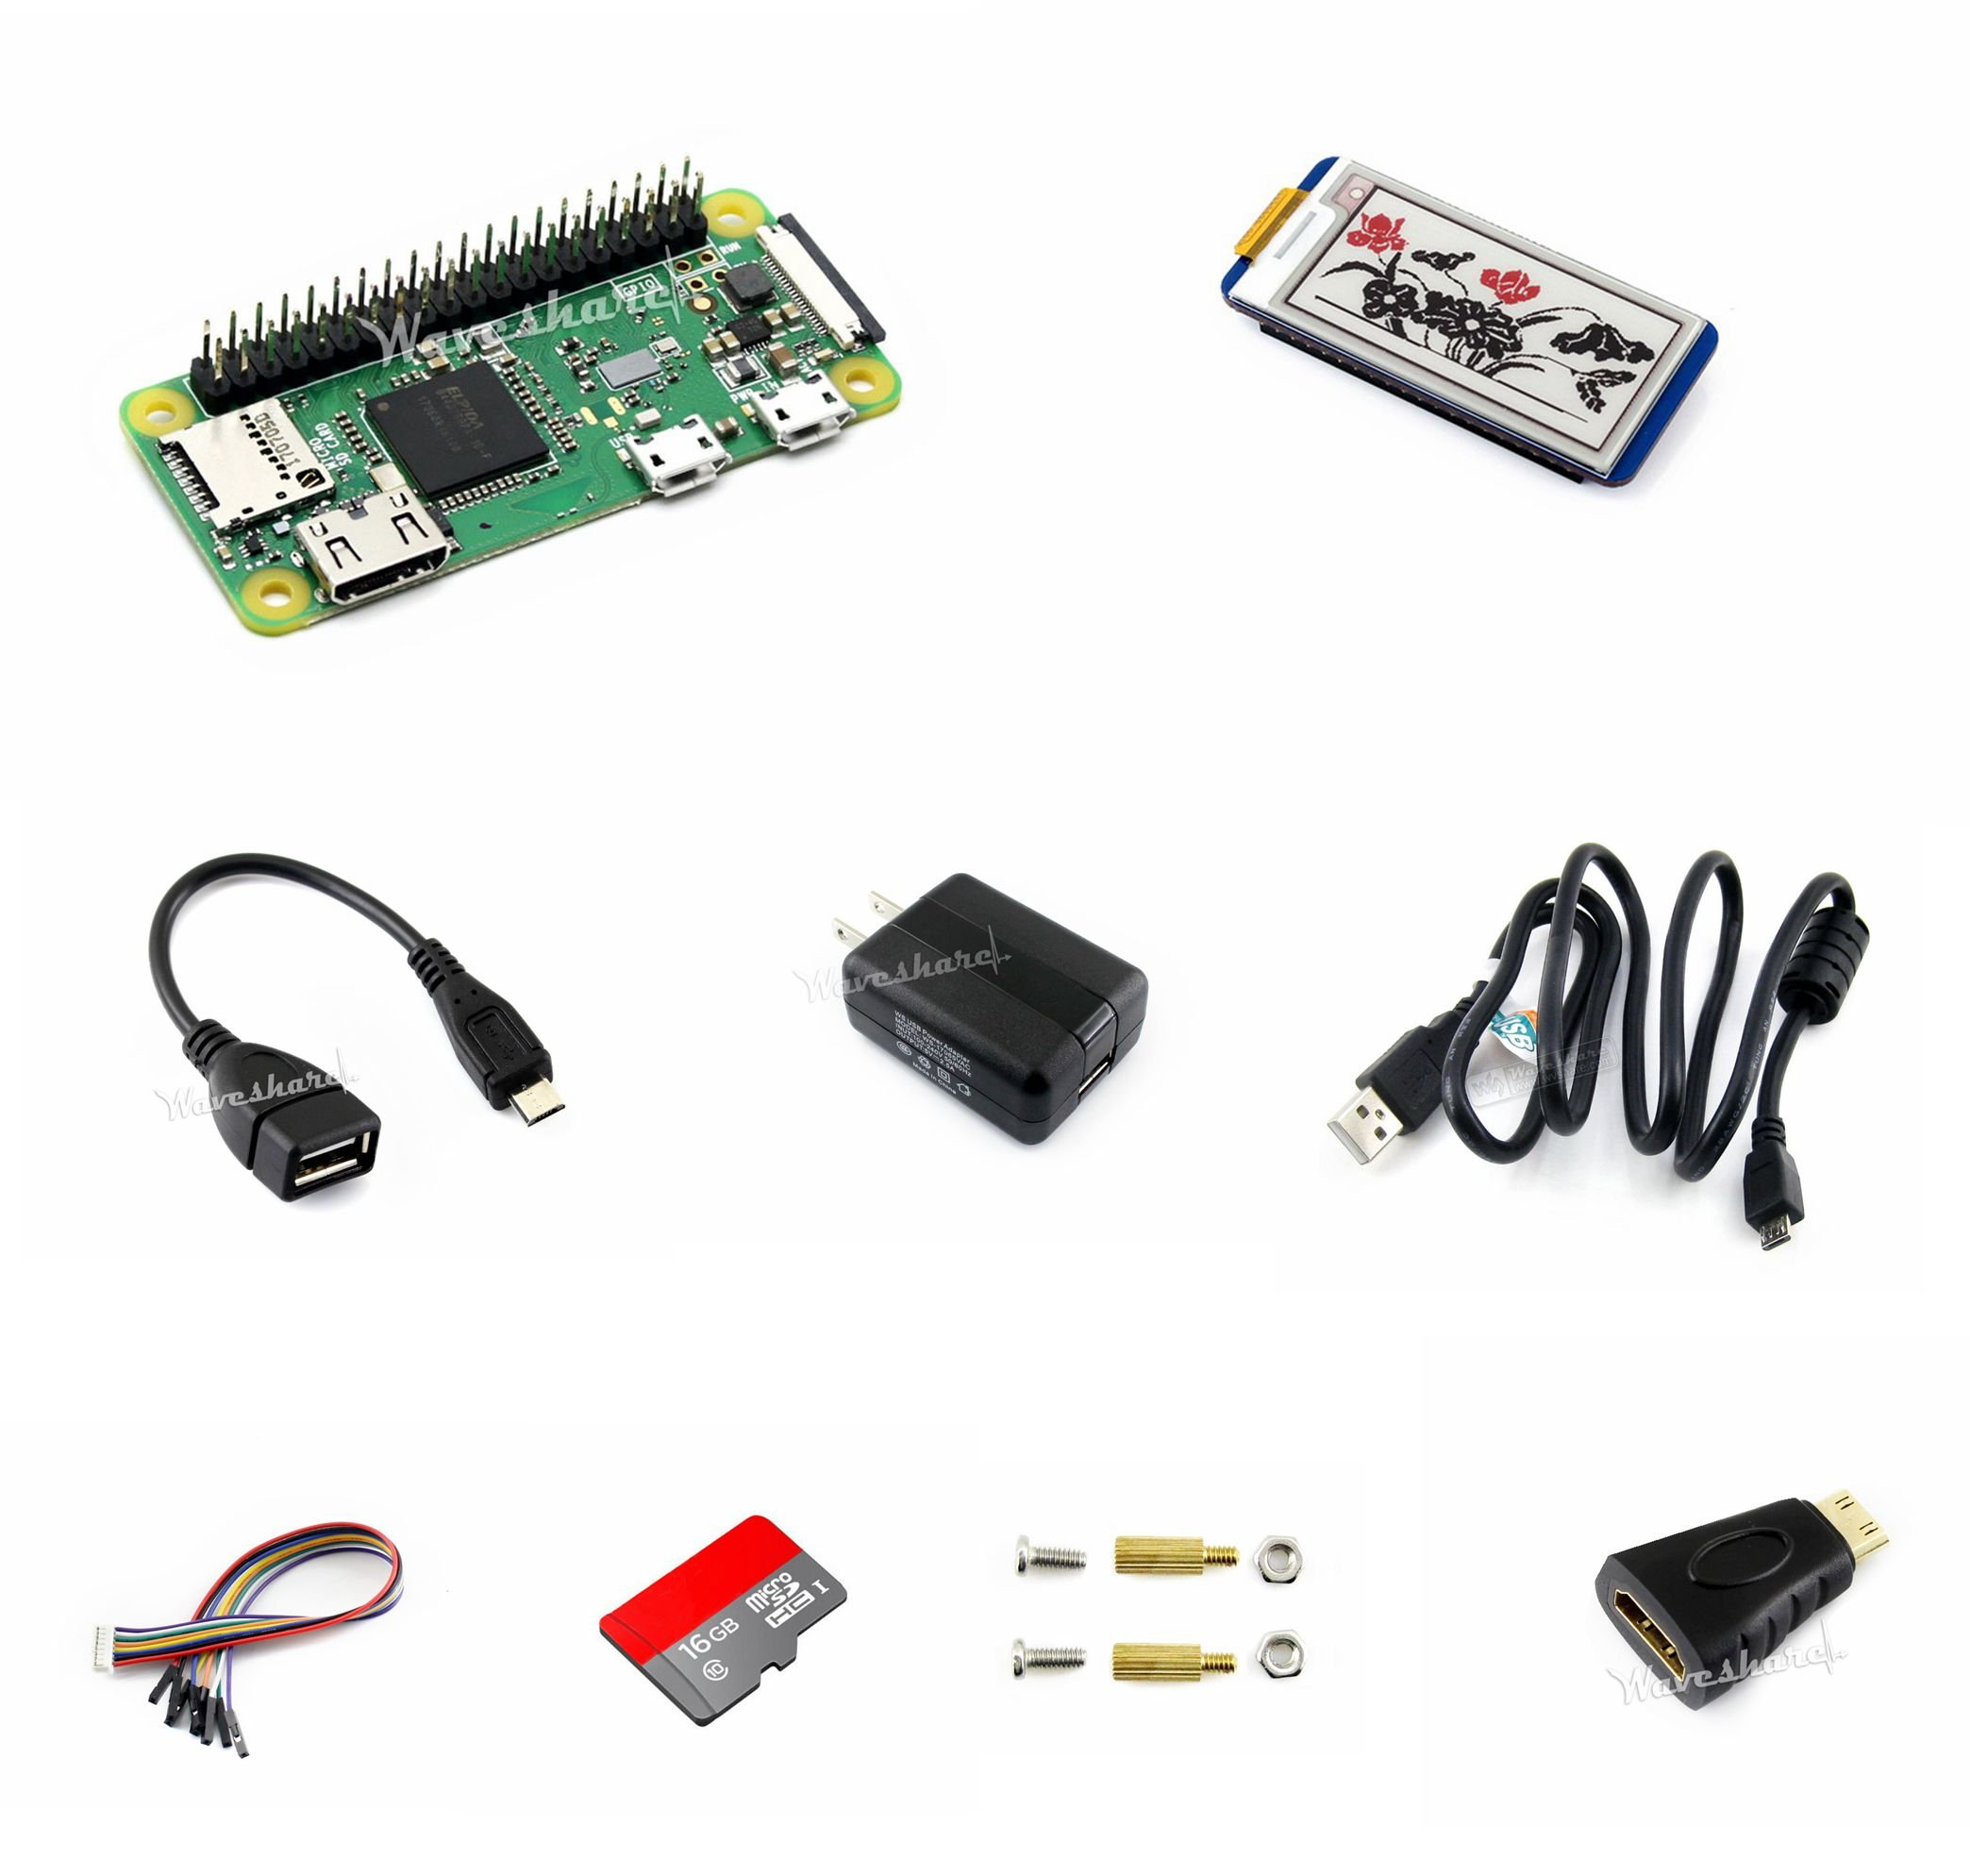 Development Kit Basic Components@Pzsmocn Raspberry Pi Zero WH,with built-in WiFi,Bluetooth,pre-soldered GPIO Headers.16GB Micro SD Card,Power Adapter,2.13inch e-Paper HAT,three-color e-ink Display. by Pzsmocn